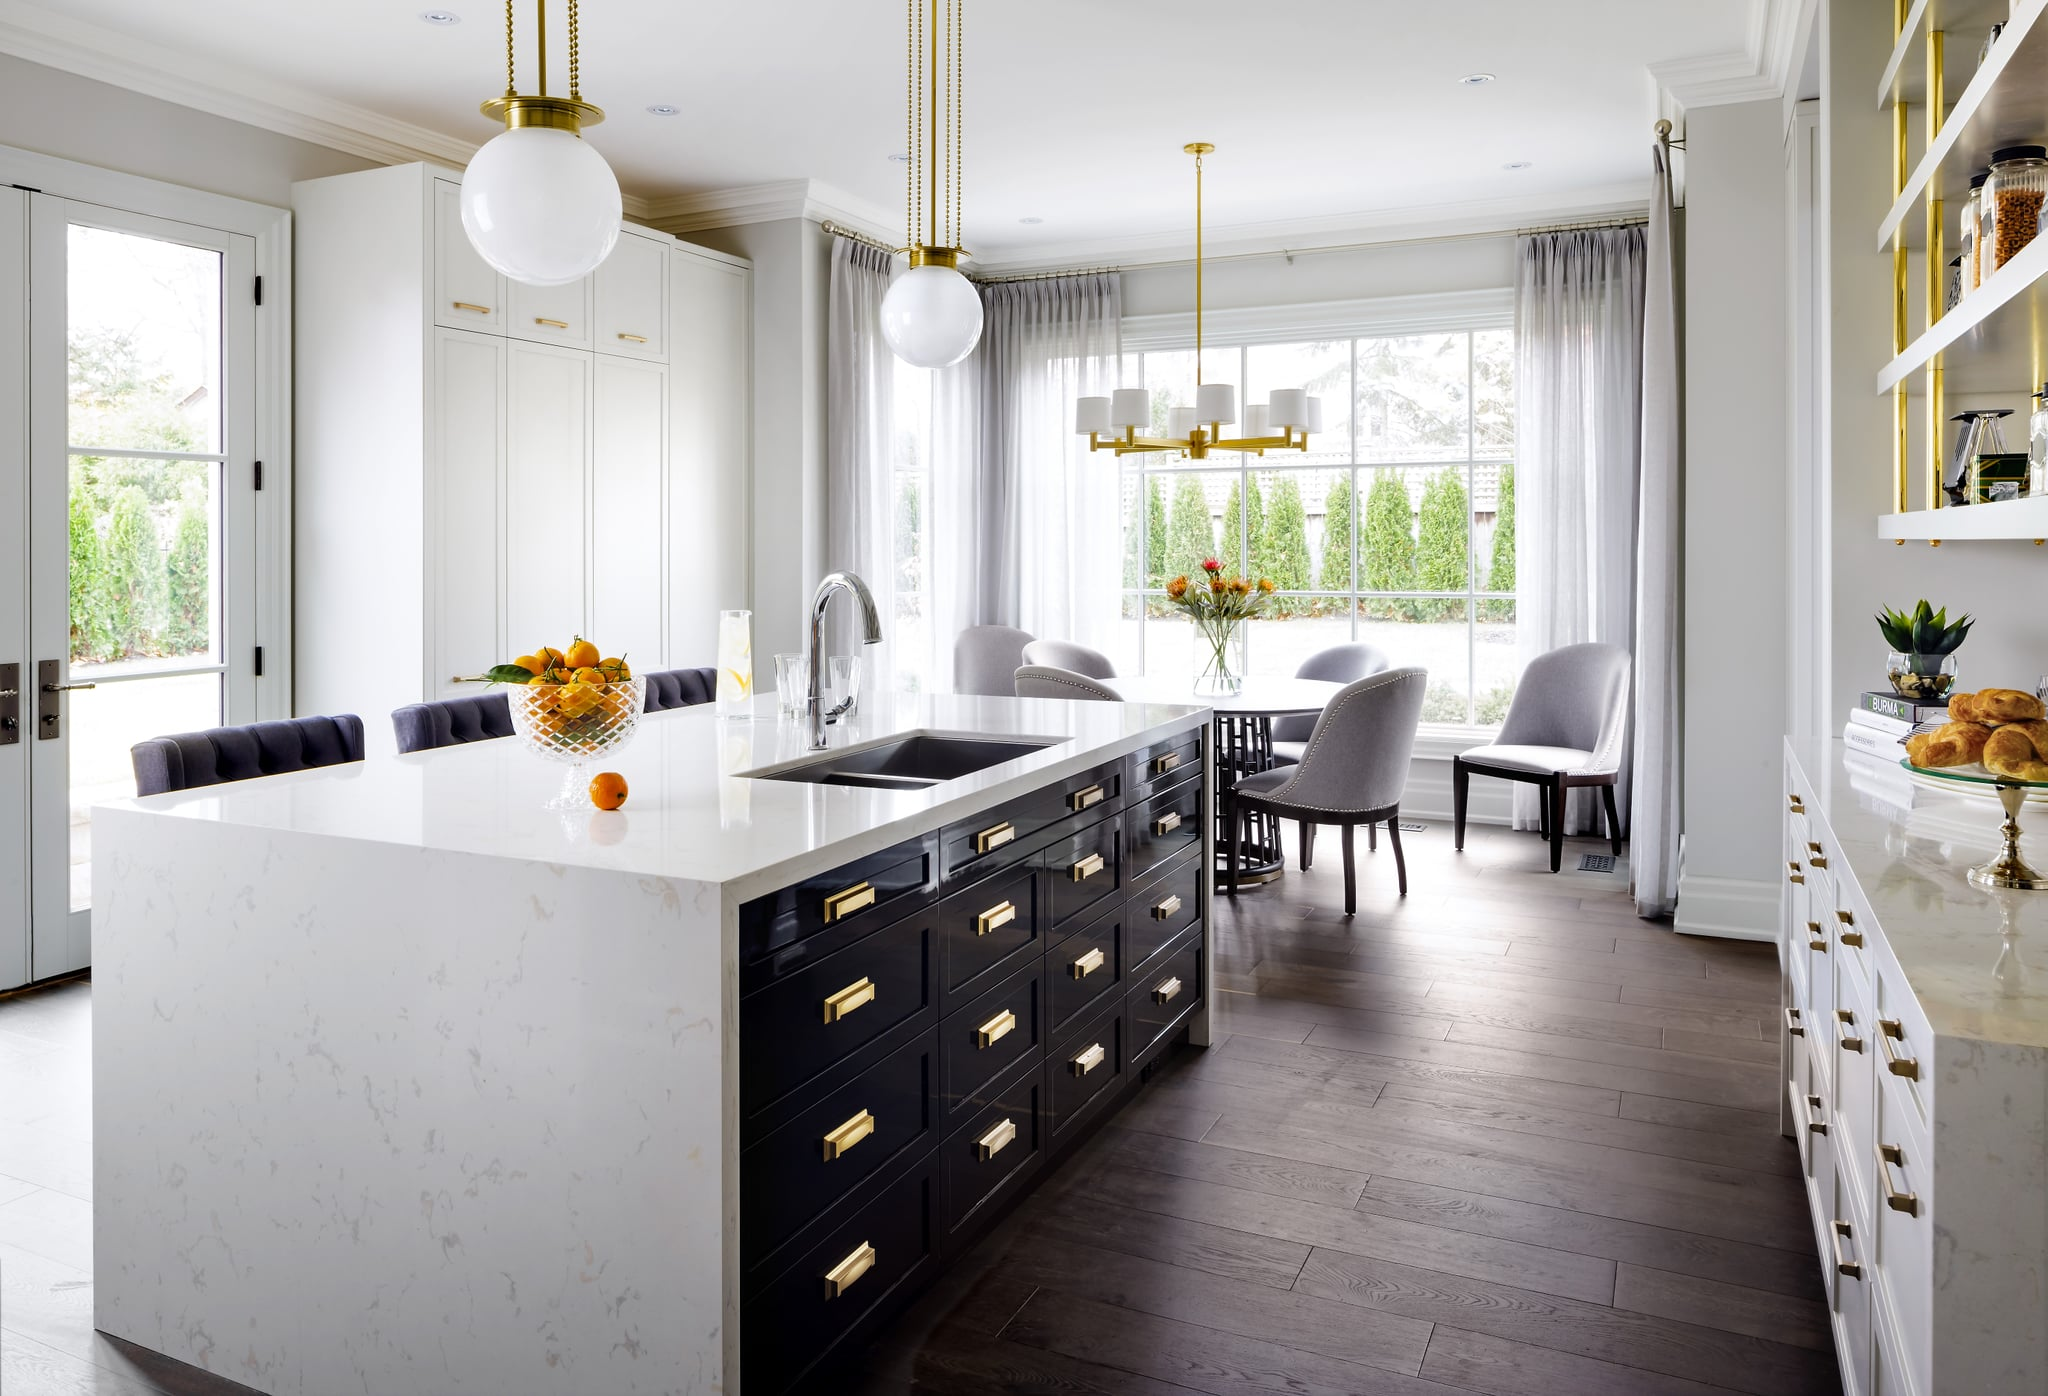 cambria faucet size subway pull the ceramic full tag storage painted backsplash quartz cabinet kithcen countertops exhaust kitchen white lamp brick countertop grey island of platinum steel images dark pendant down stainless with stove modification